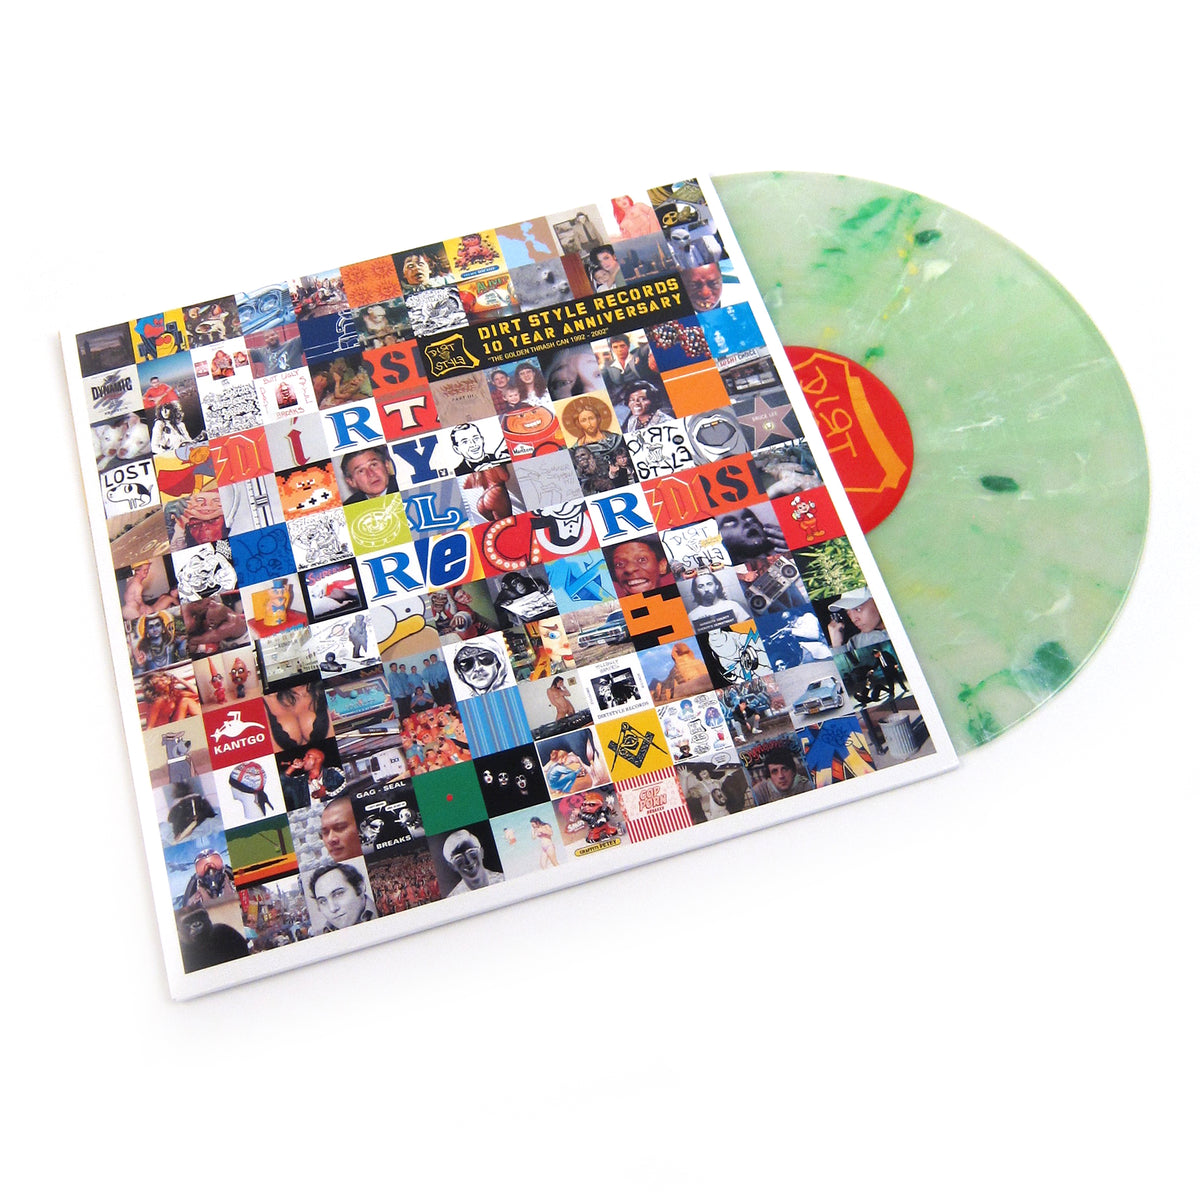 Dirt Style Records: 10 Year Anniversary (Splatter Colored Vinyl) Vinyl LP